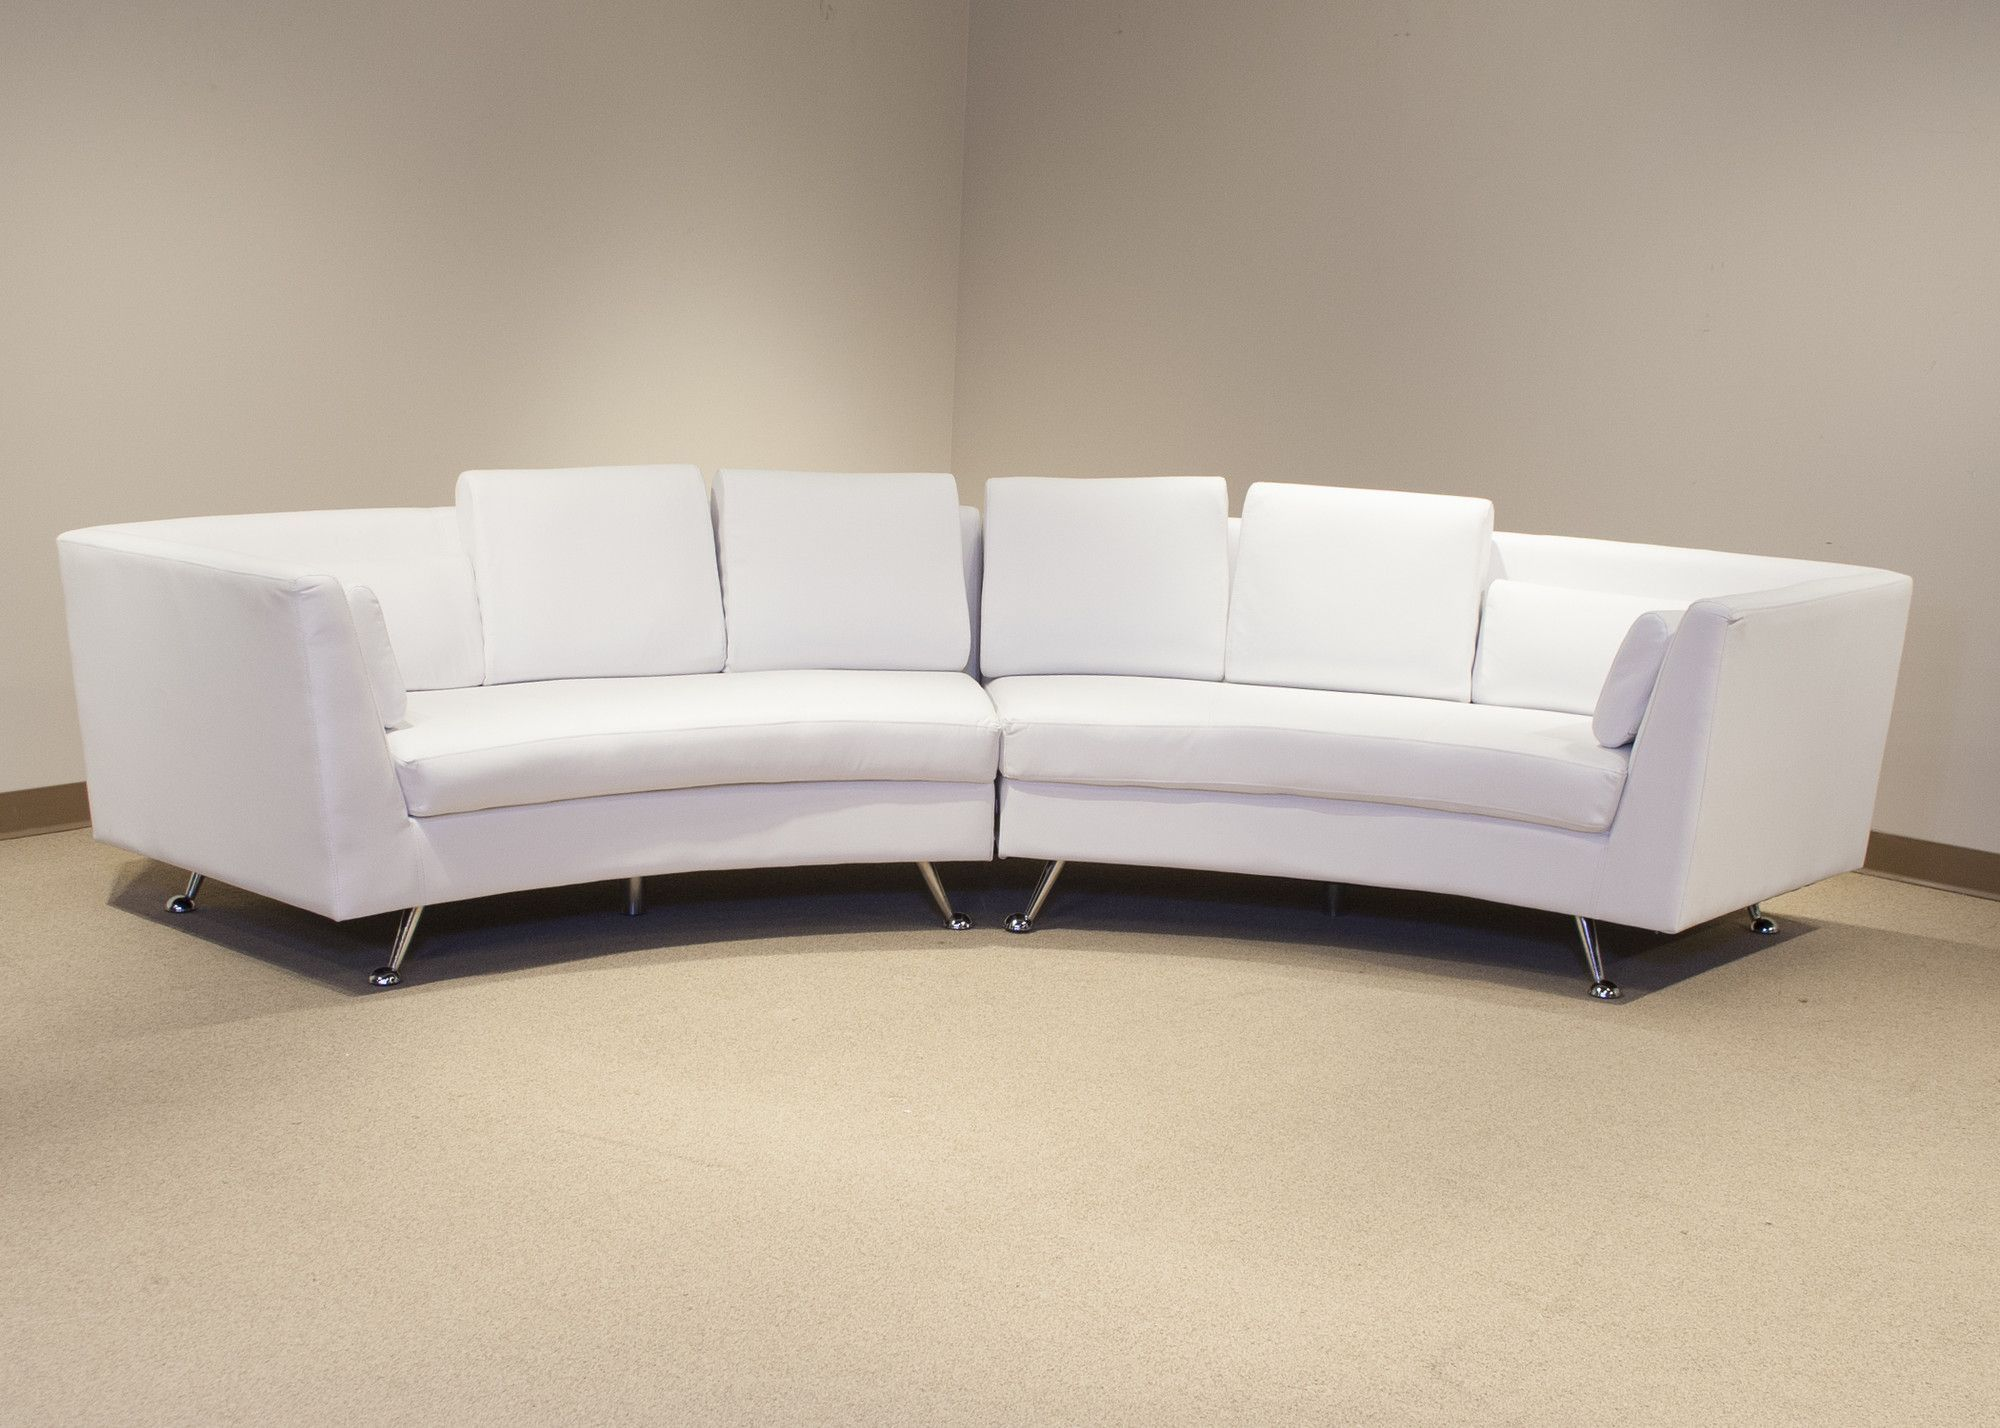 White Bonded Leather Sectional Sofa Set With Light Wooden Legs South Africa Products Furniture